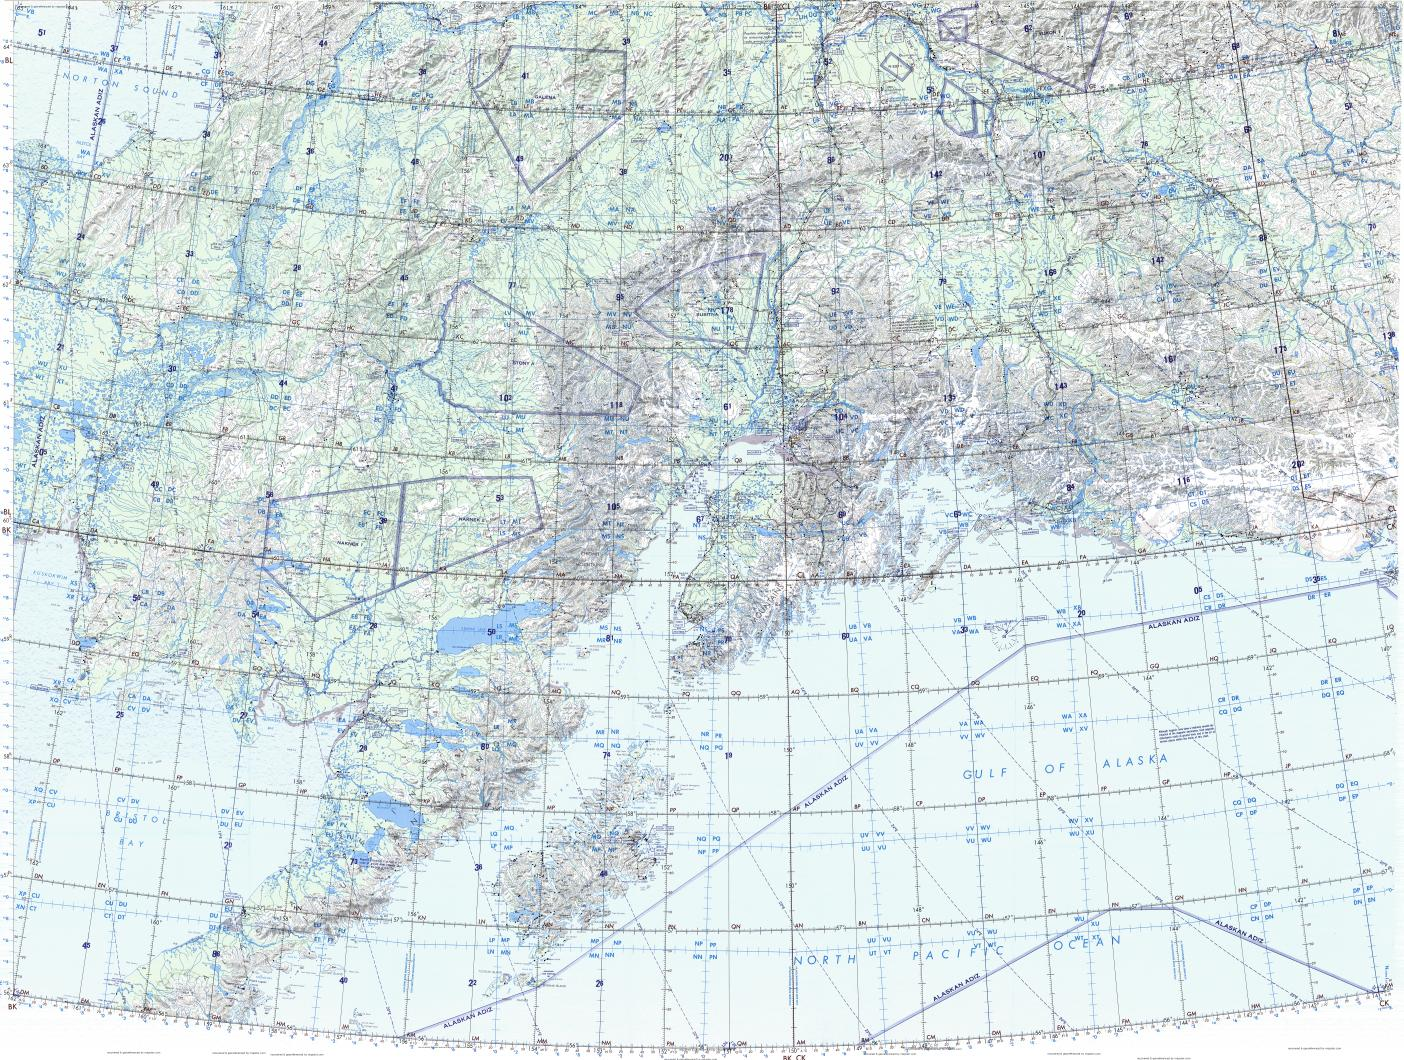 Download Topographic Map In Area Of Anchorage Mapstor Com